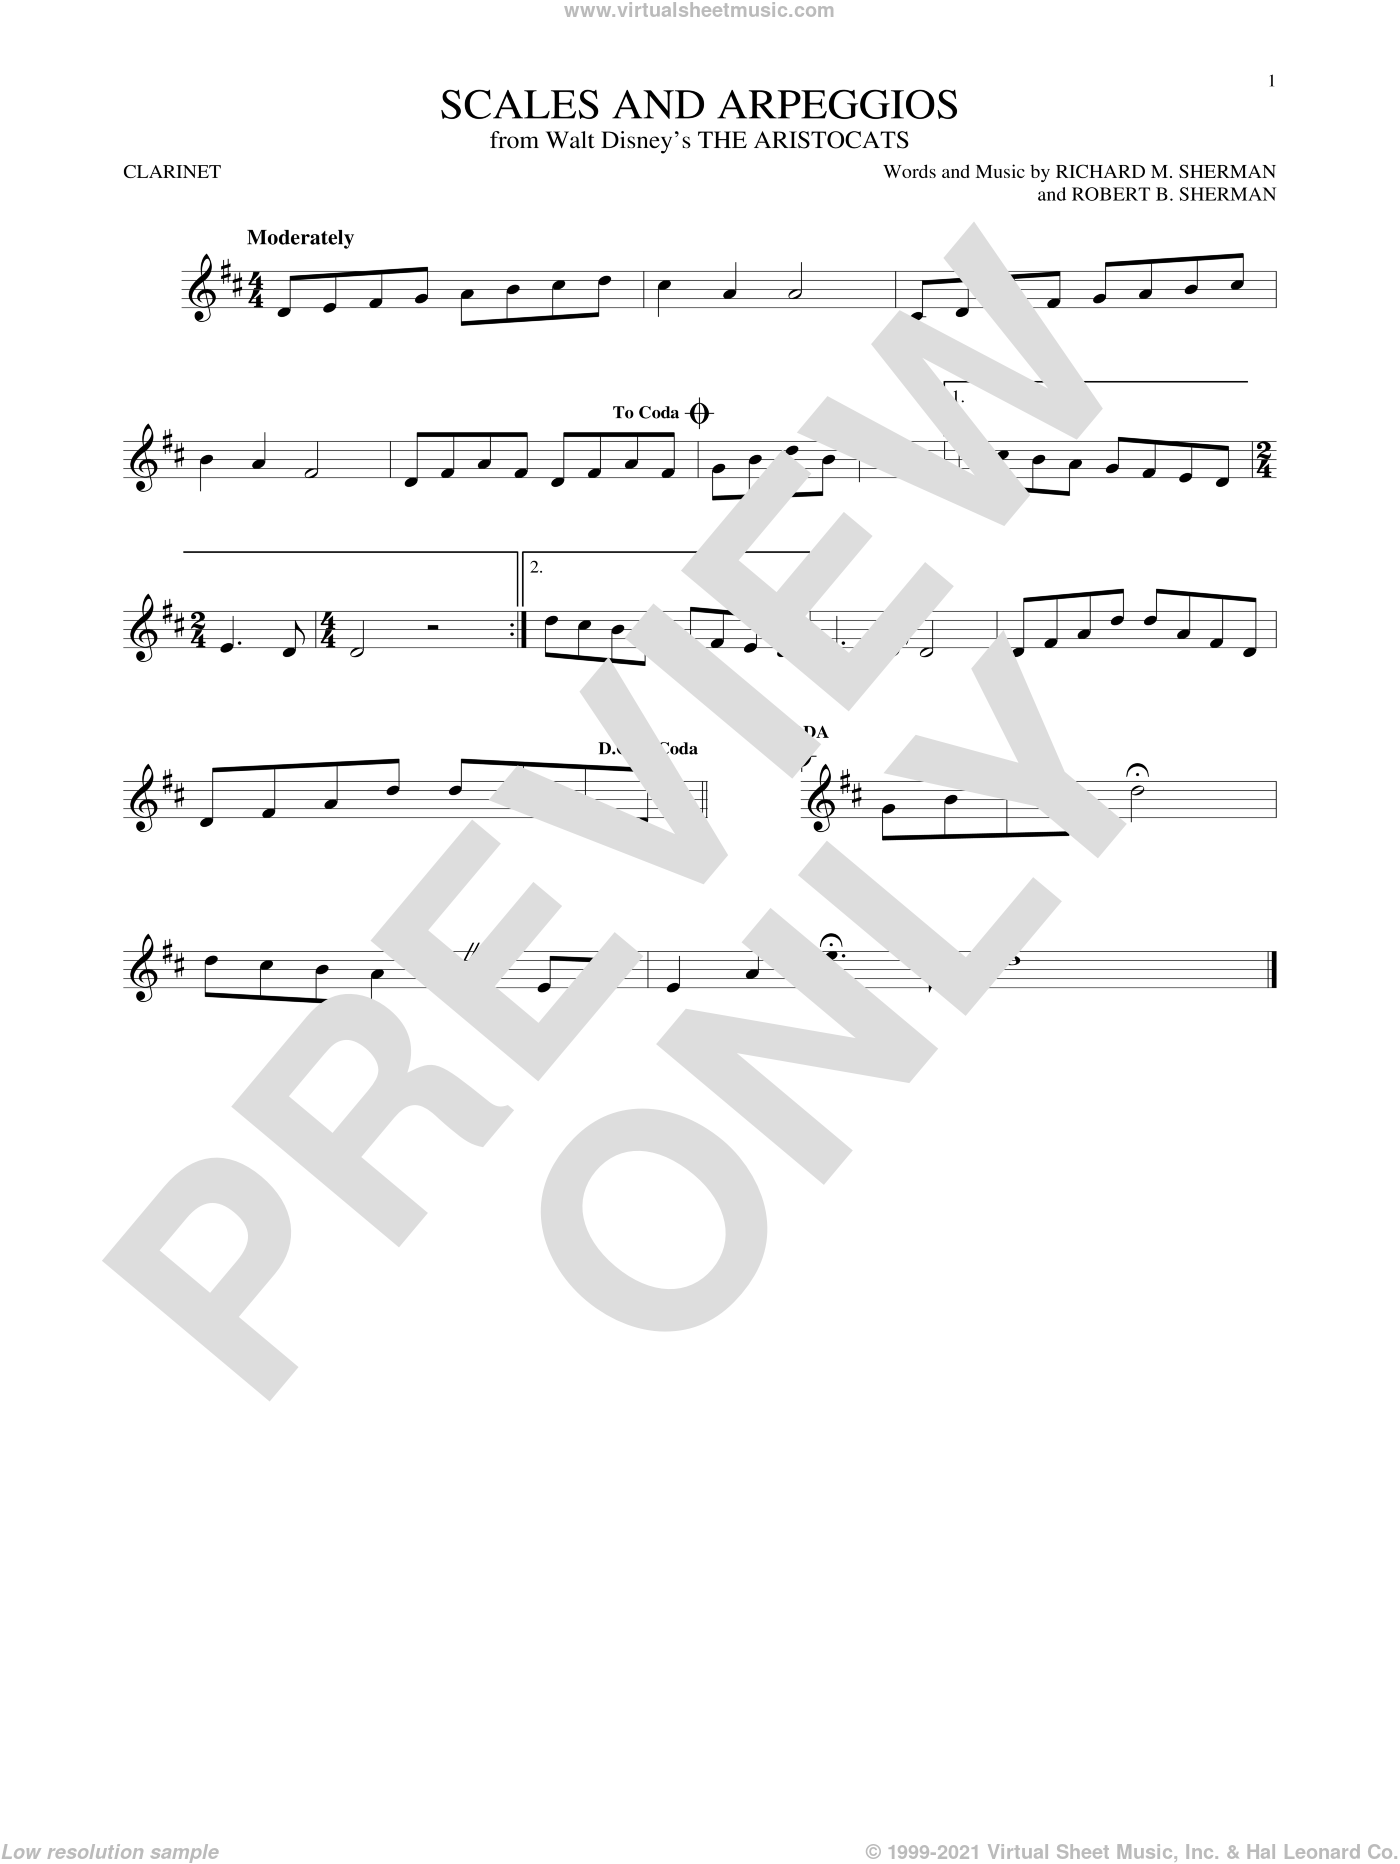 Scales And Arpeggios sheet music for clarinet solo by Richard M. Sherman, Richard & Robert Sherman and Robert B. Sherman, intermediate skill level